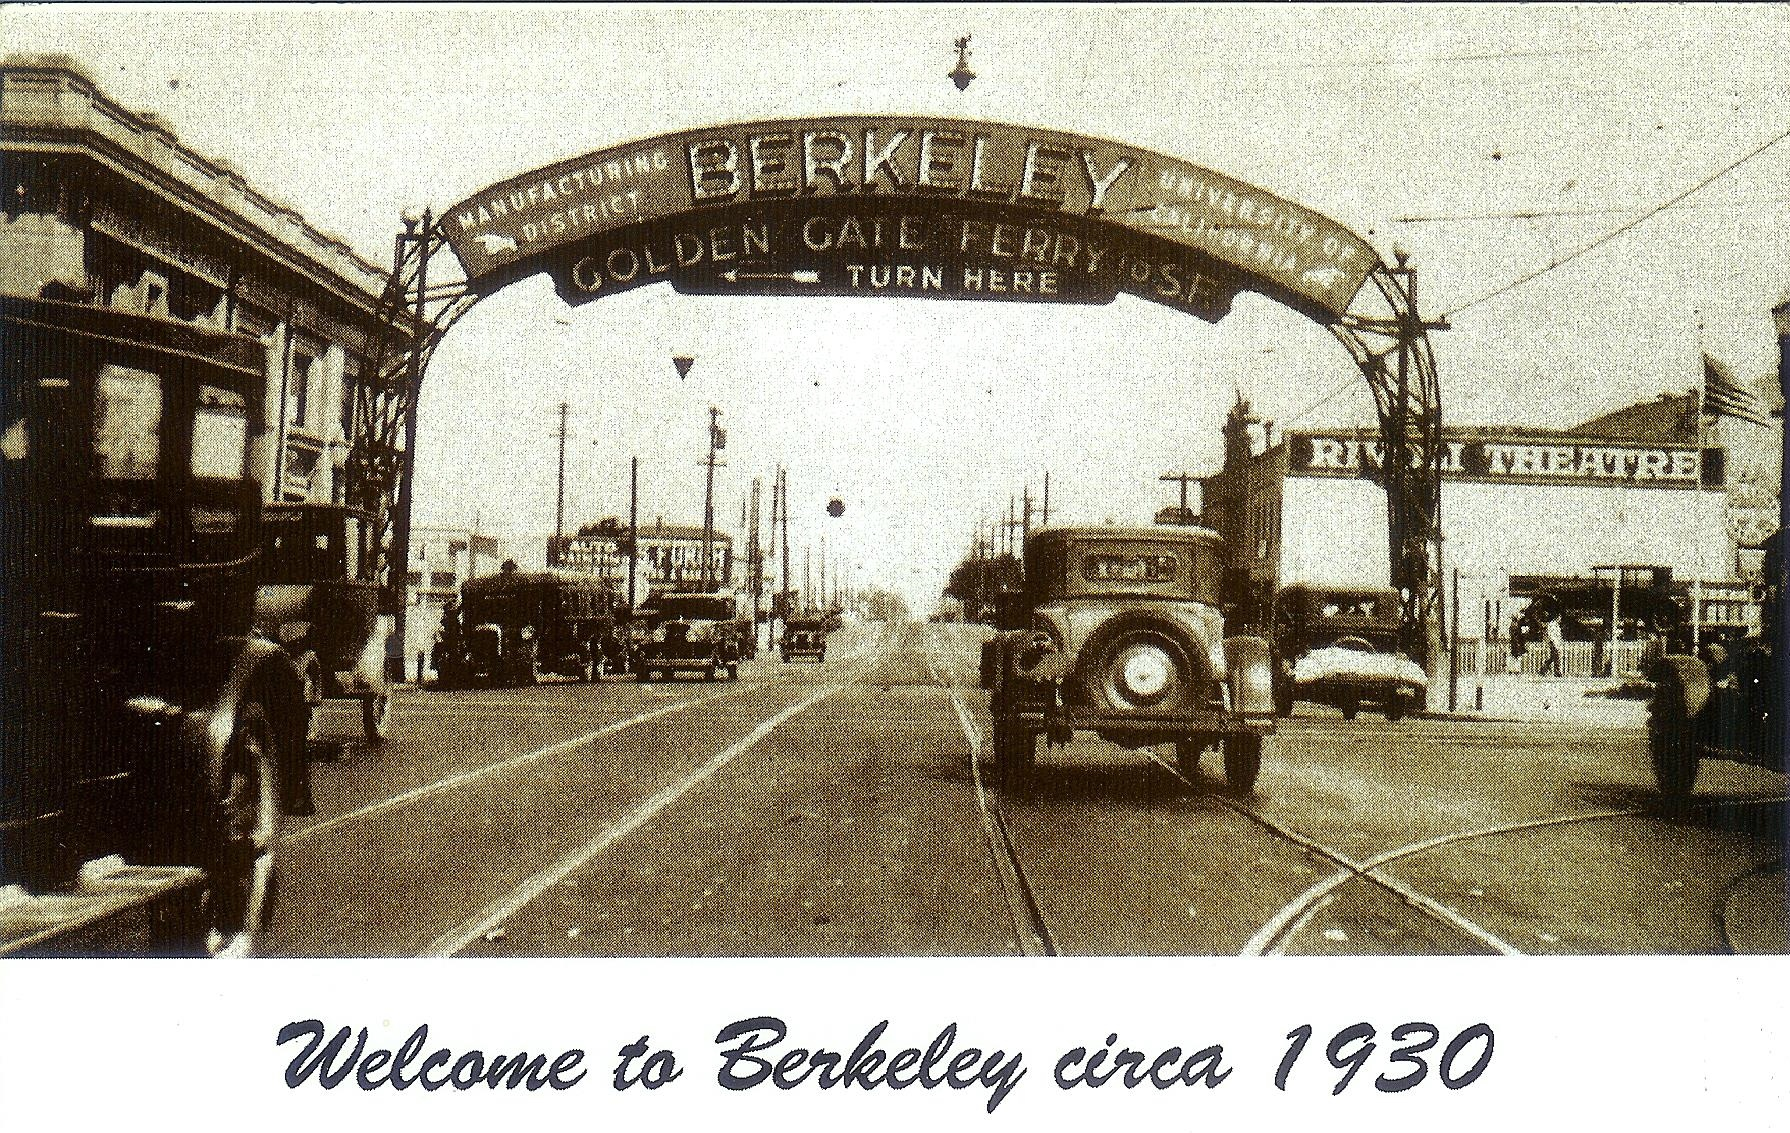 The Berkeley arch located on San Pablo Ave. at University Ave., Circa 1930. The line #2 Street car tracks were taken out in 1933. The sign points out the contrasting areas of Berkeley (industrial and education). The arch was removed in 1942. Louis Stein collection.